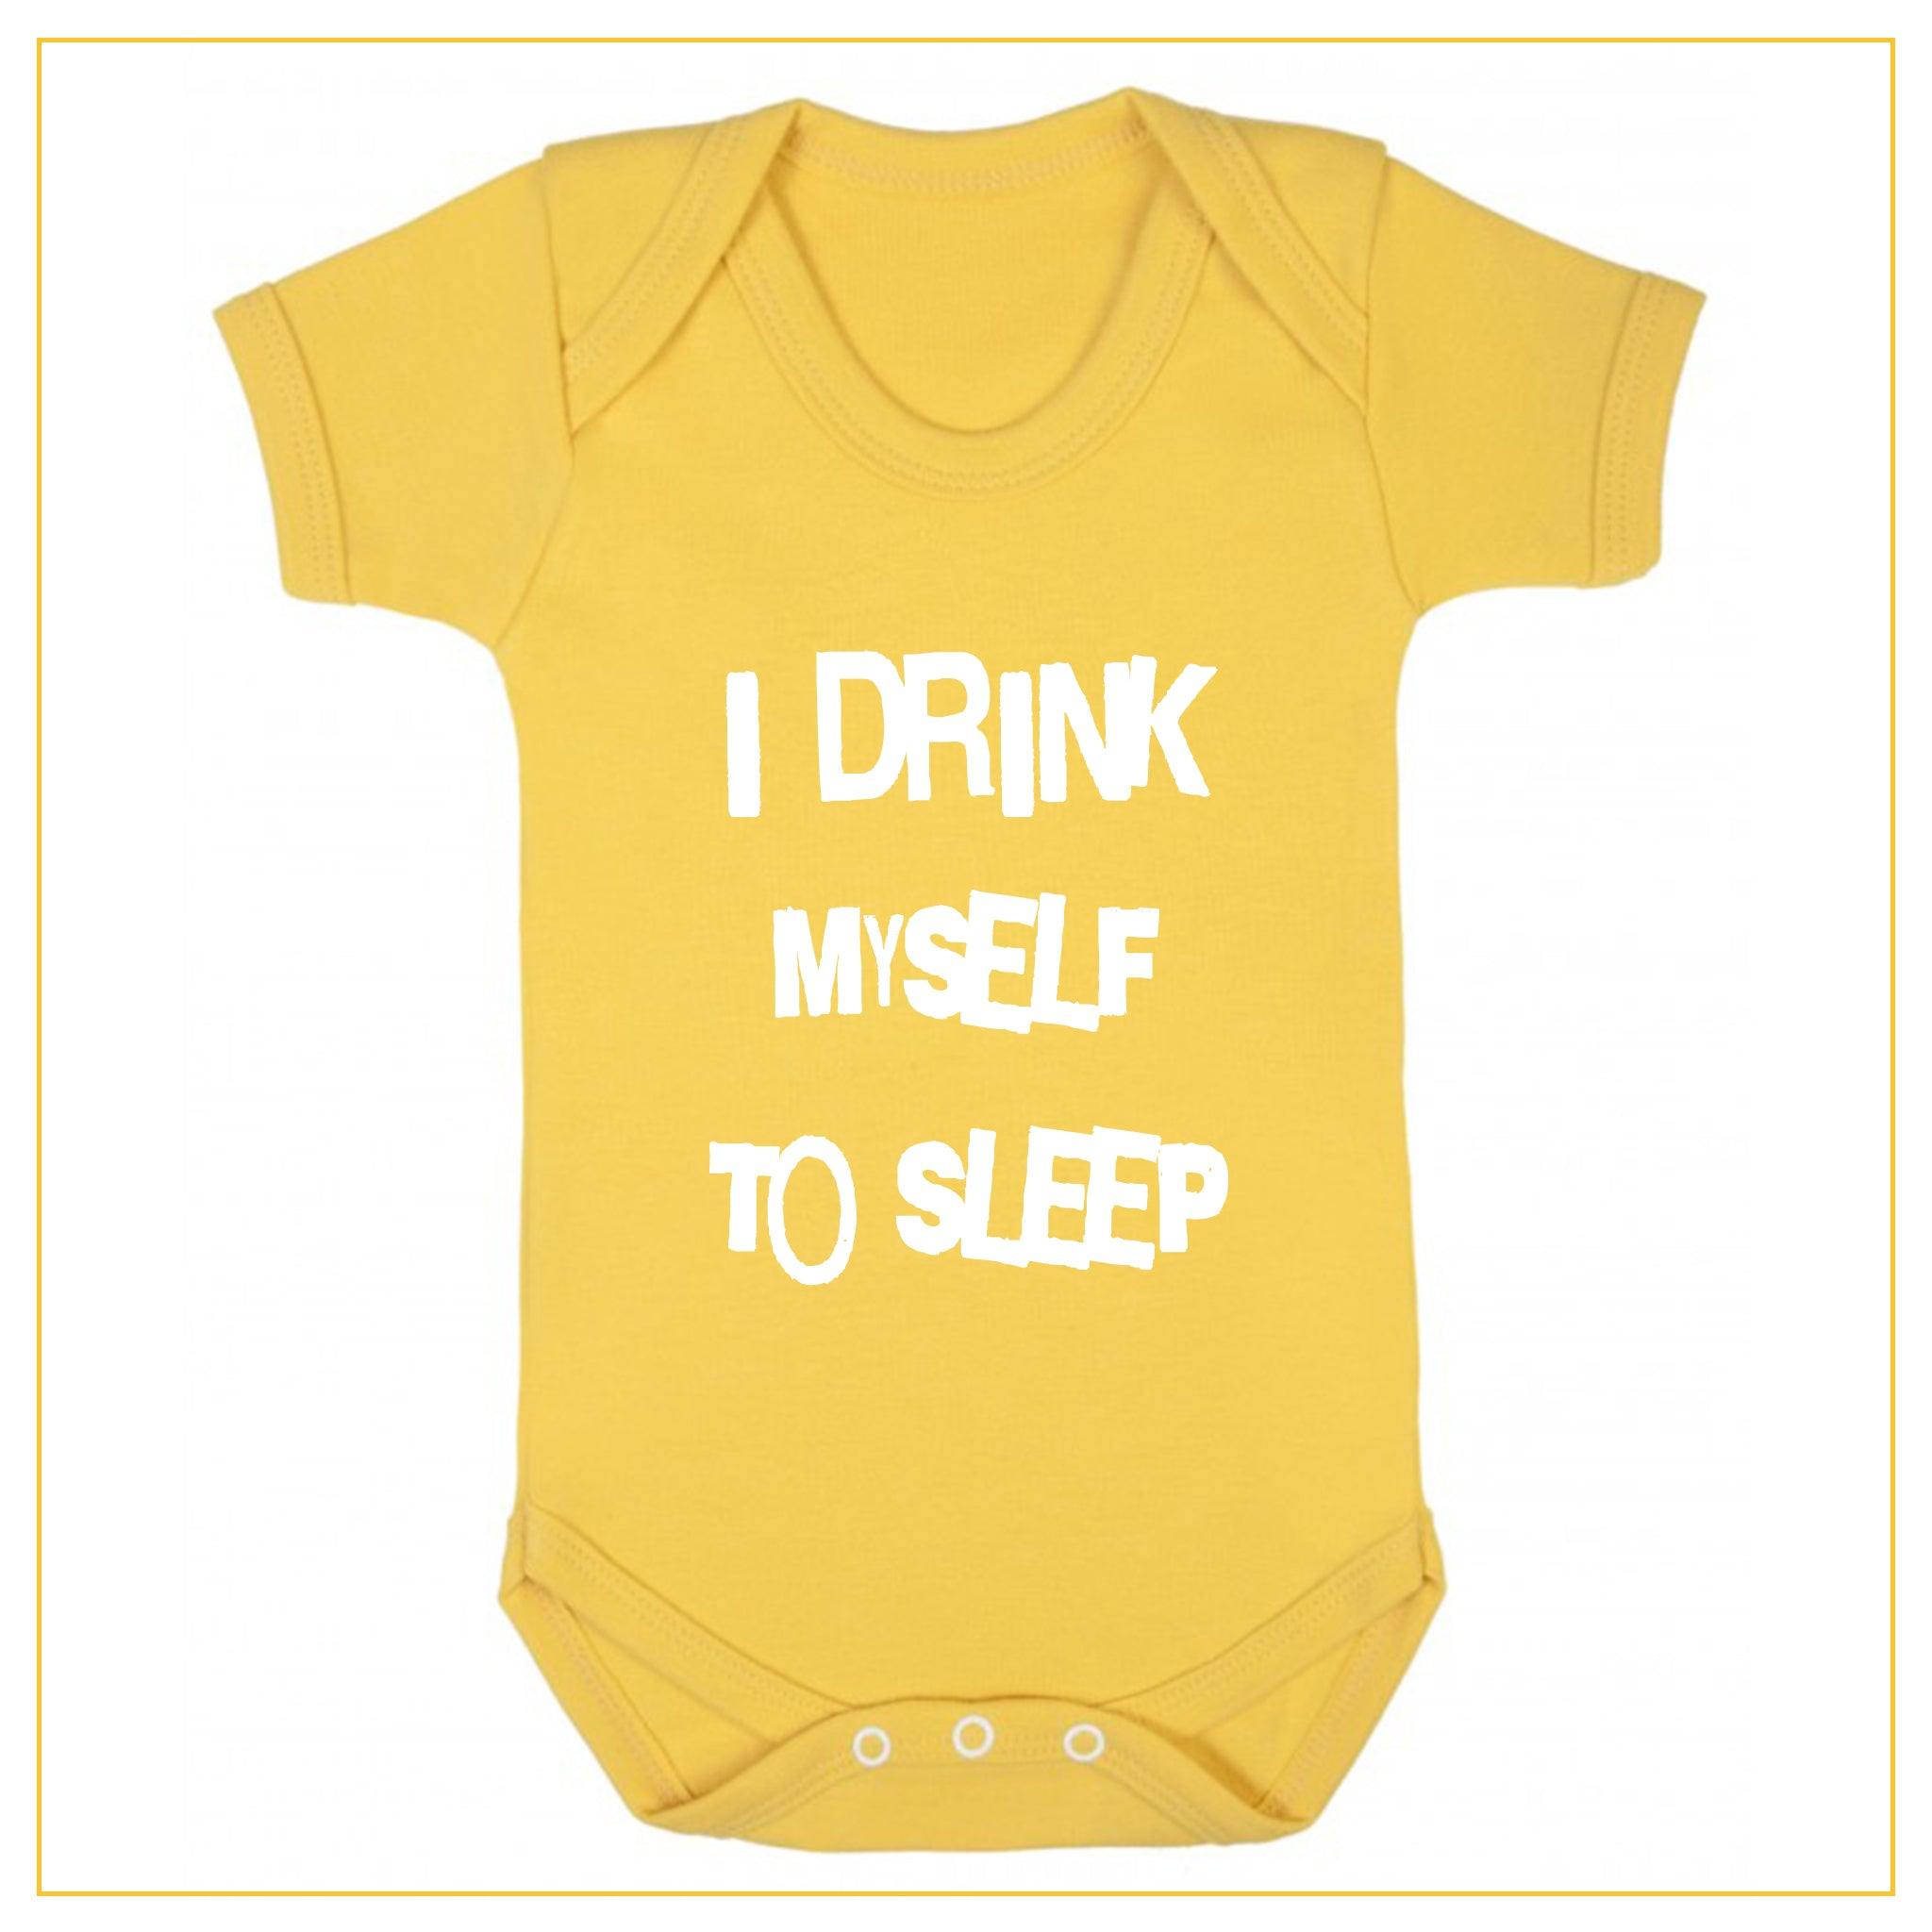 I drink myself to sleep baby onesie in yellow